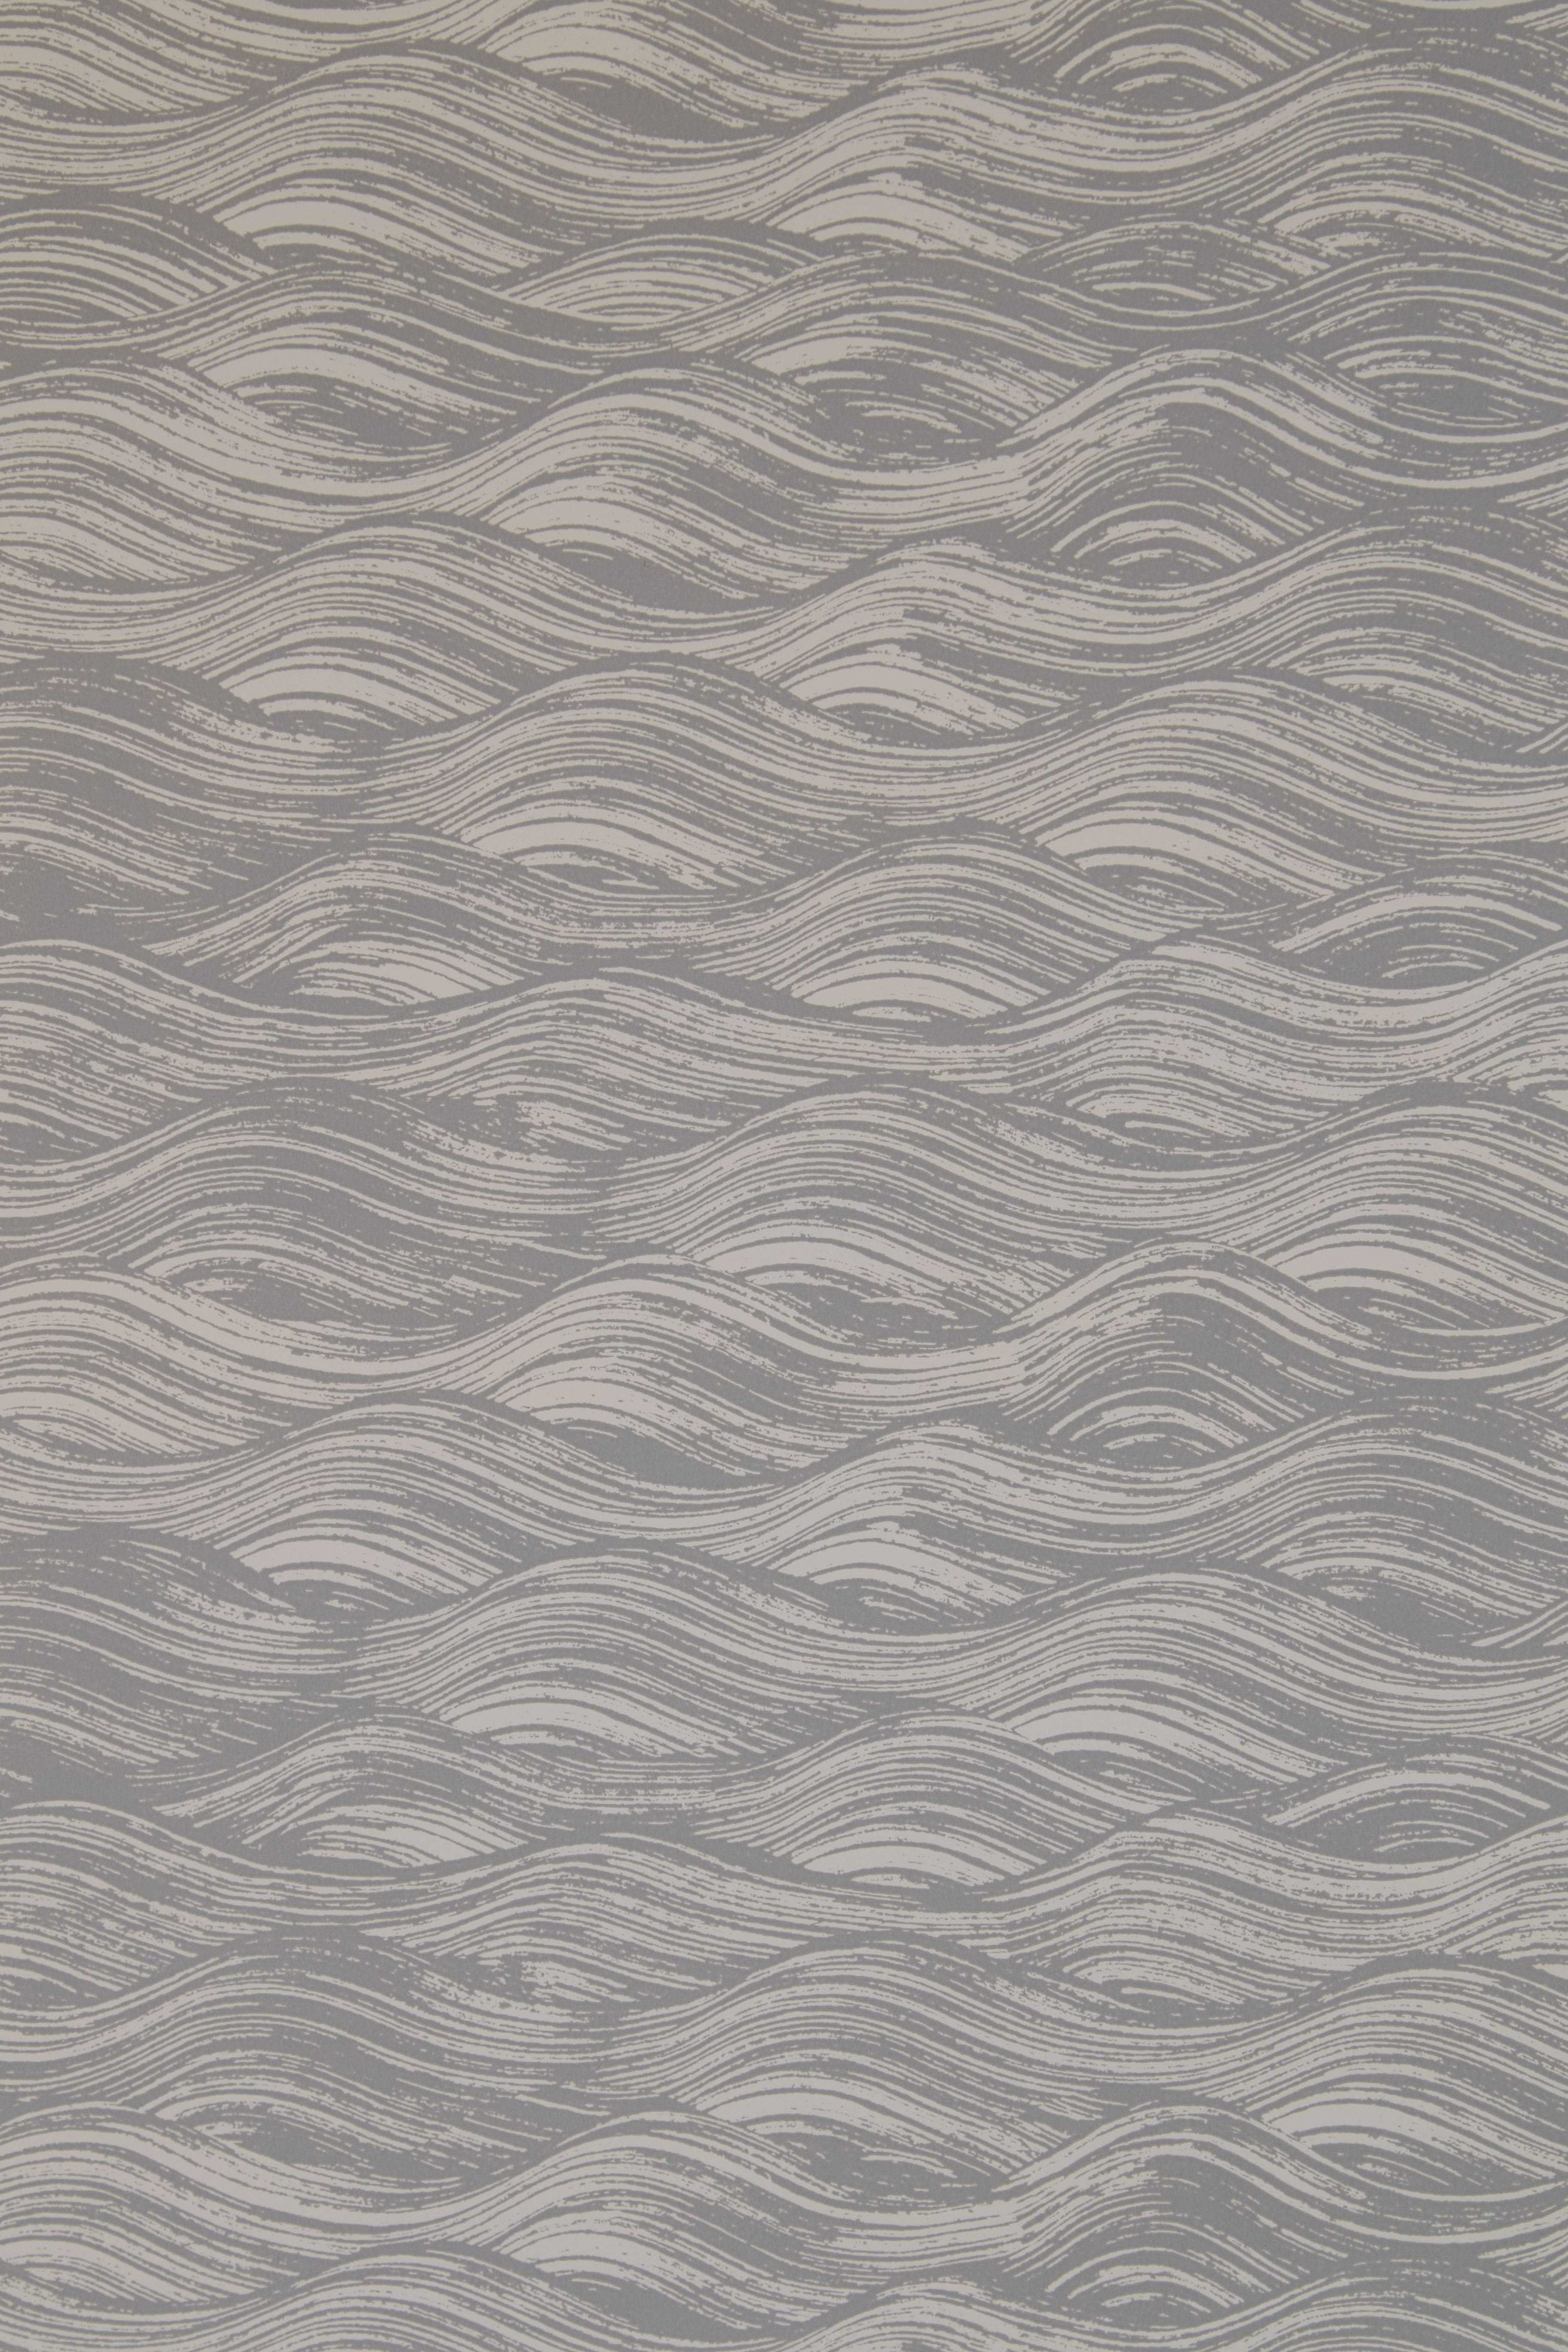 Painted Wave in French Grey, SL160-04